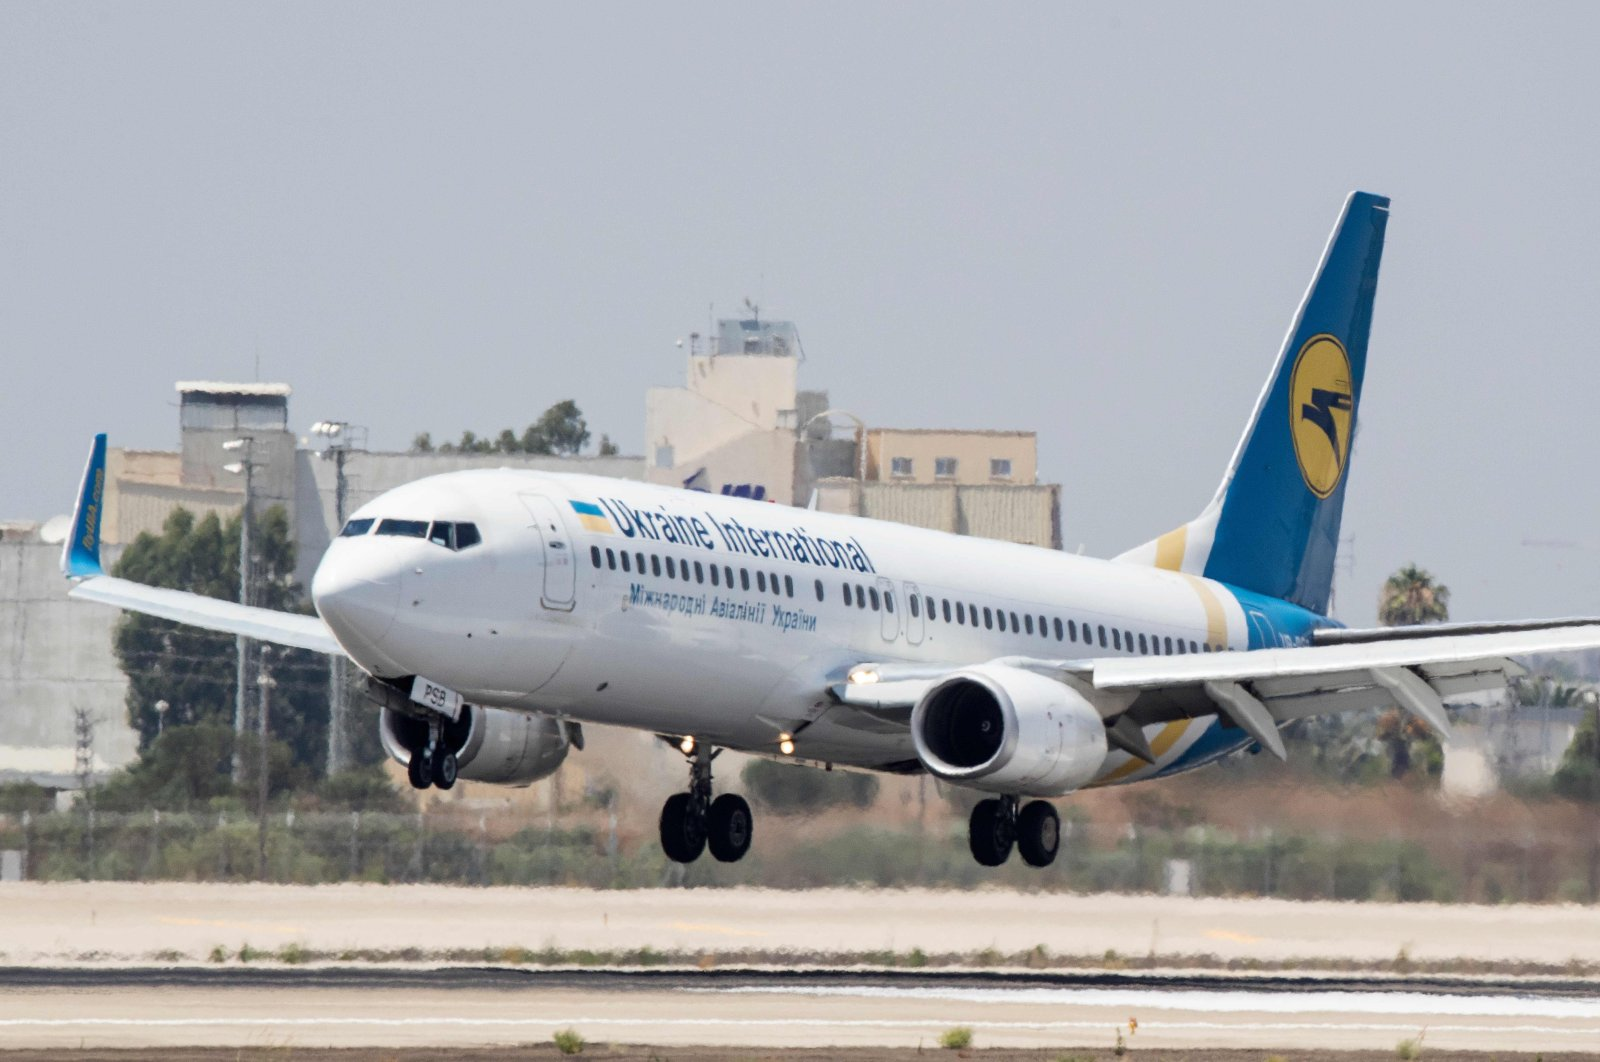 A Boeing 737-3E7 from Ukraine International Airlines lands at Israel's Ben Gurion International airport on the outskirts of Tel Aviv, July 4, 2017. (AFP Photo)